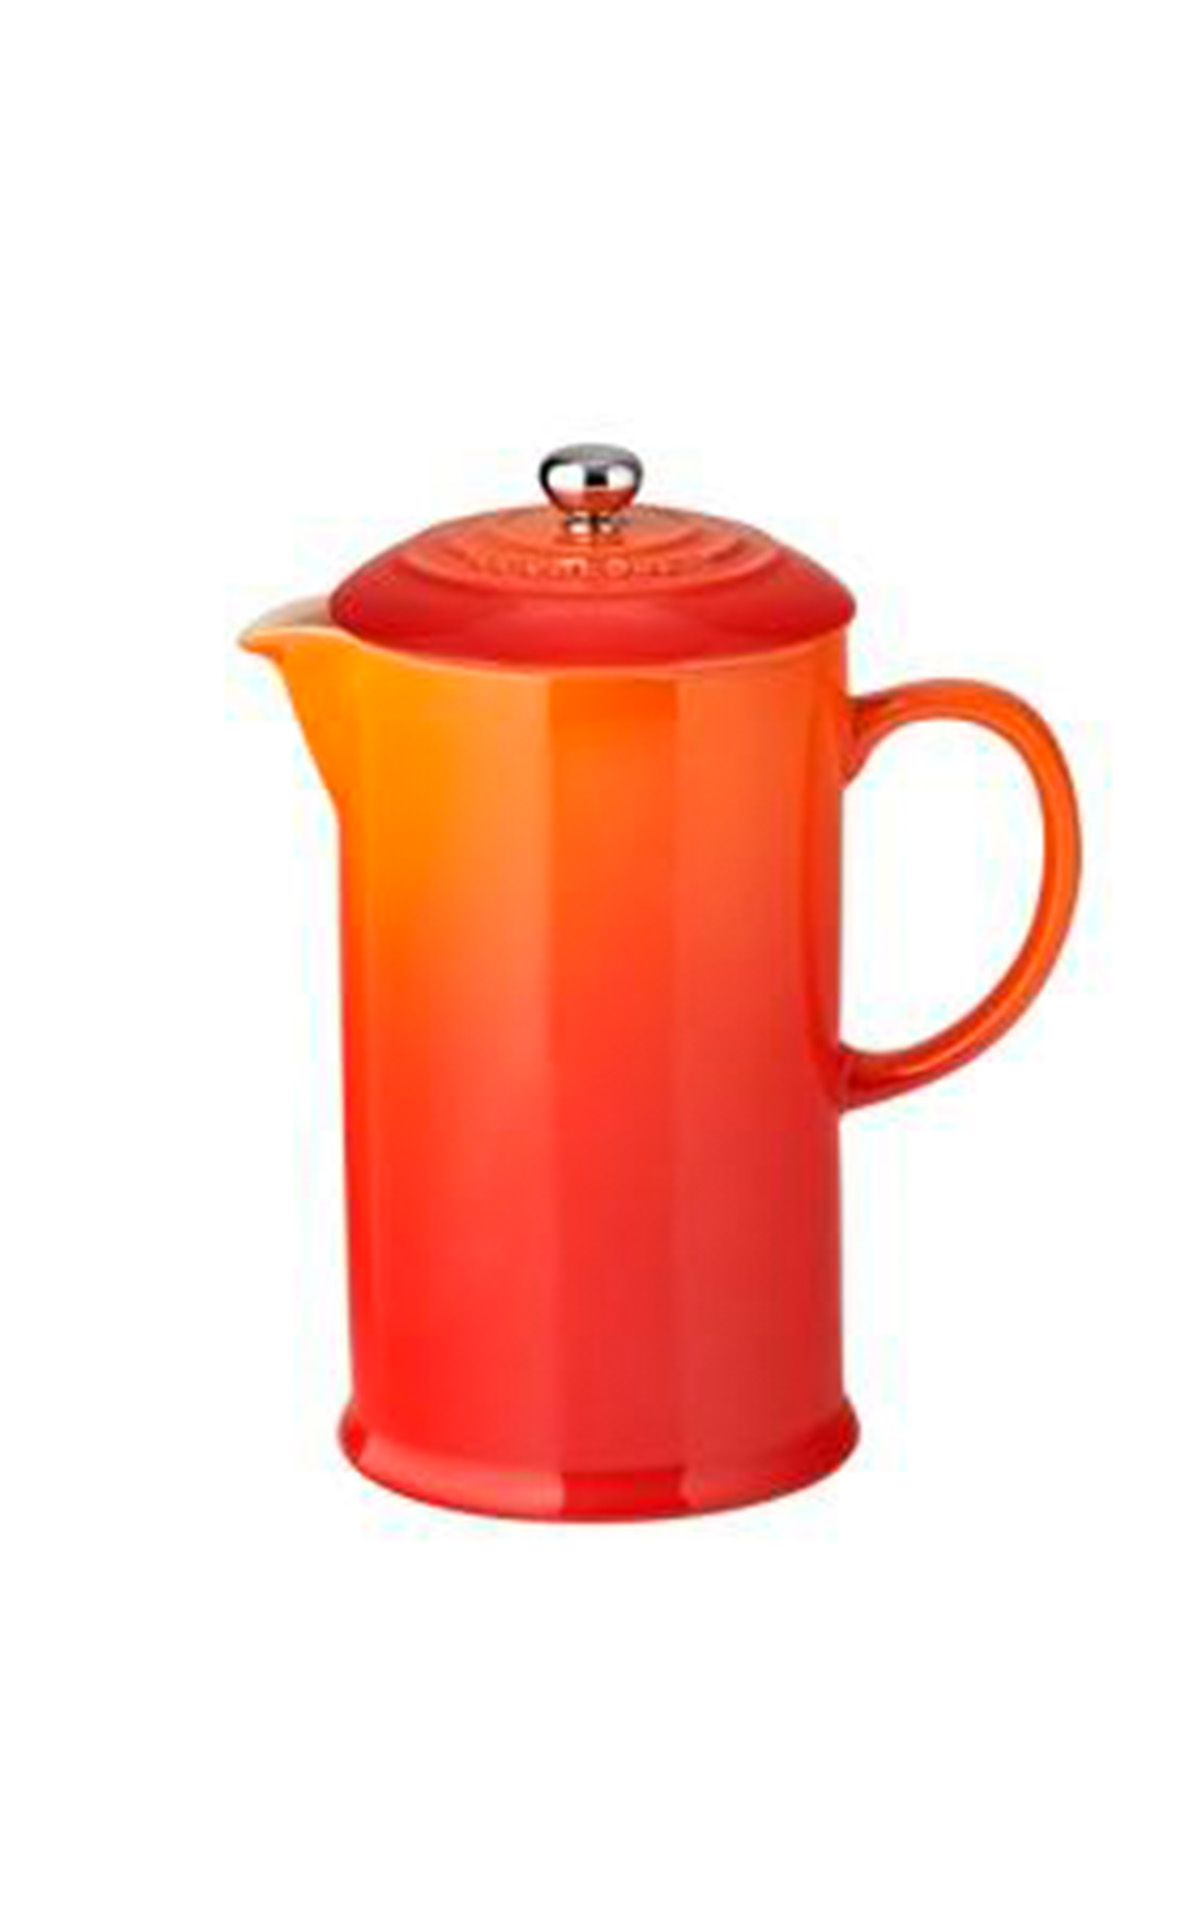 Le Creuset Coffee pot and press volcanic from Bicester Village